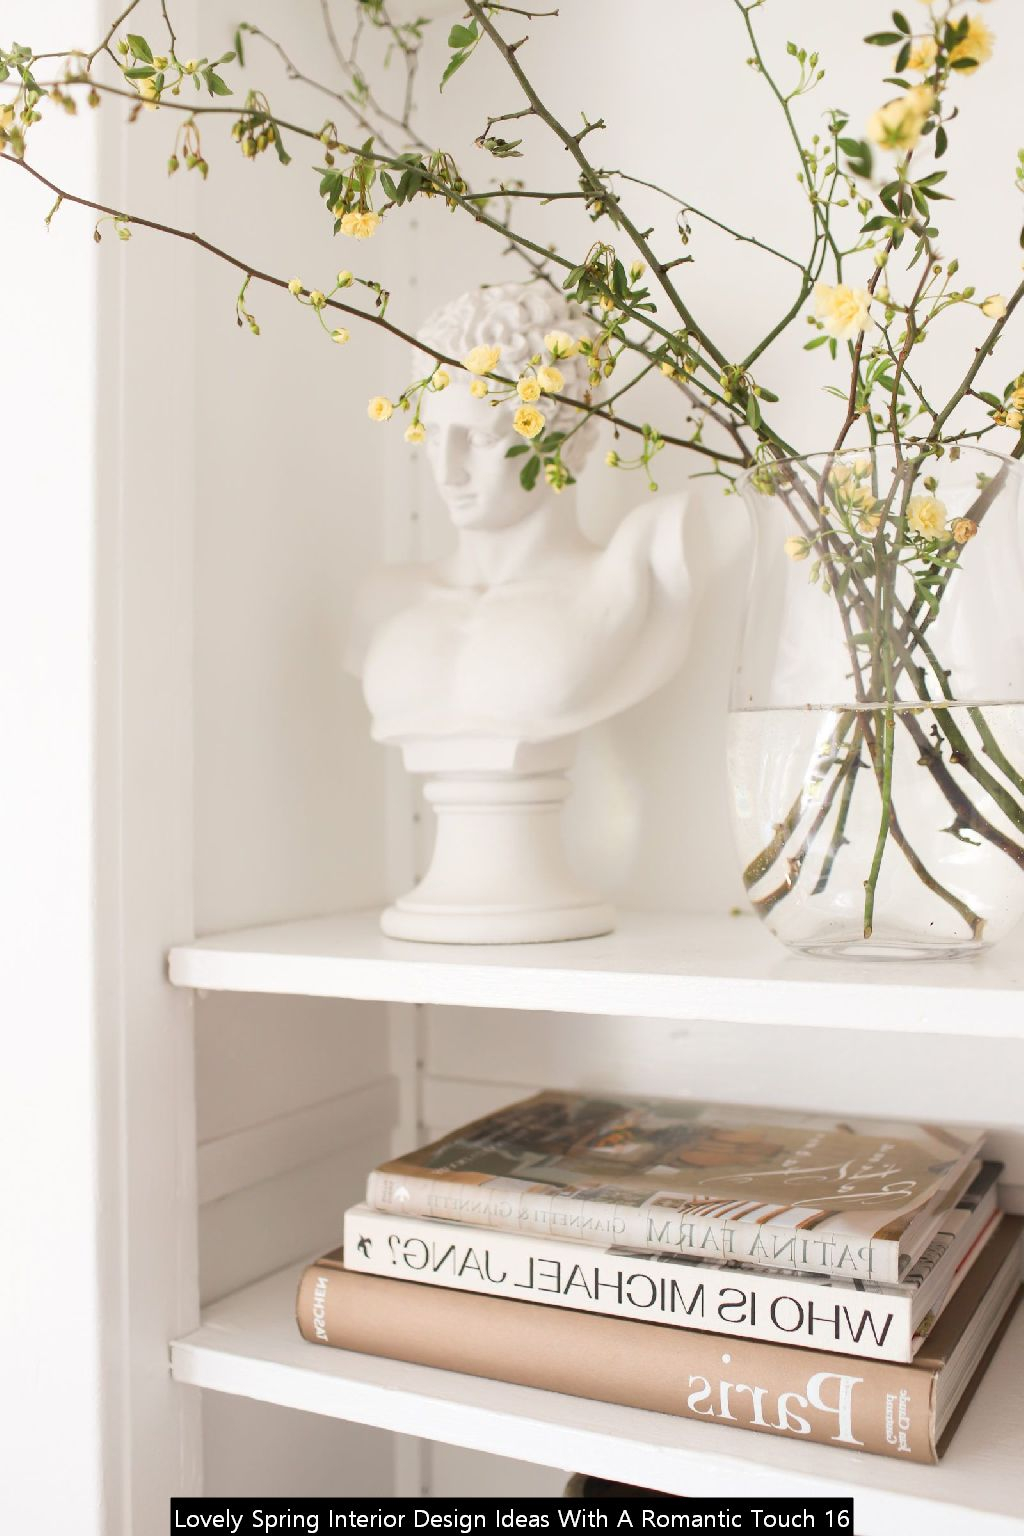 Lovely Spring Interior Design Ideas With A Romantic Touch 16